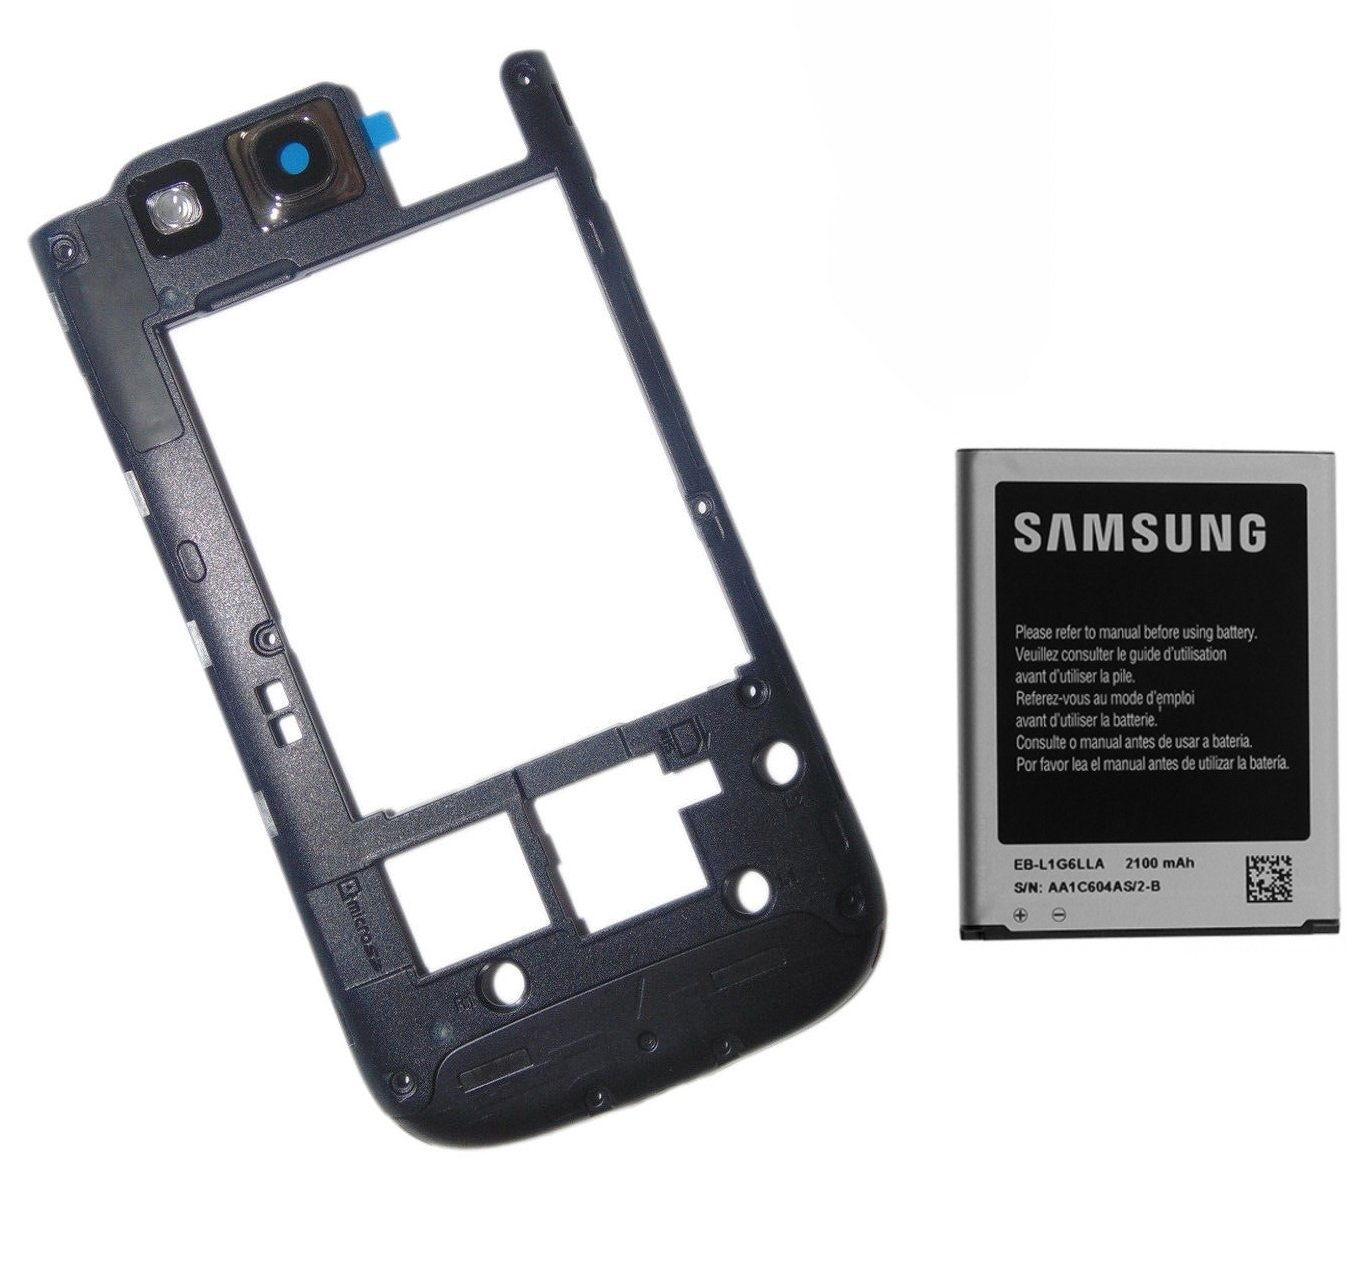 dcf55e25ce76 Get Quotations · OEM Samsung Galaxy S3 Battery 2100mAh with NFC + Black Frame  Housing Cover w  Camera